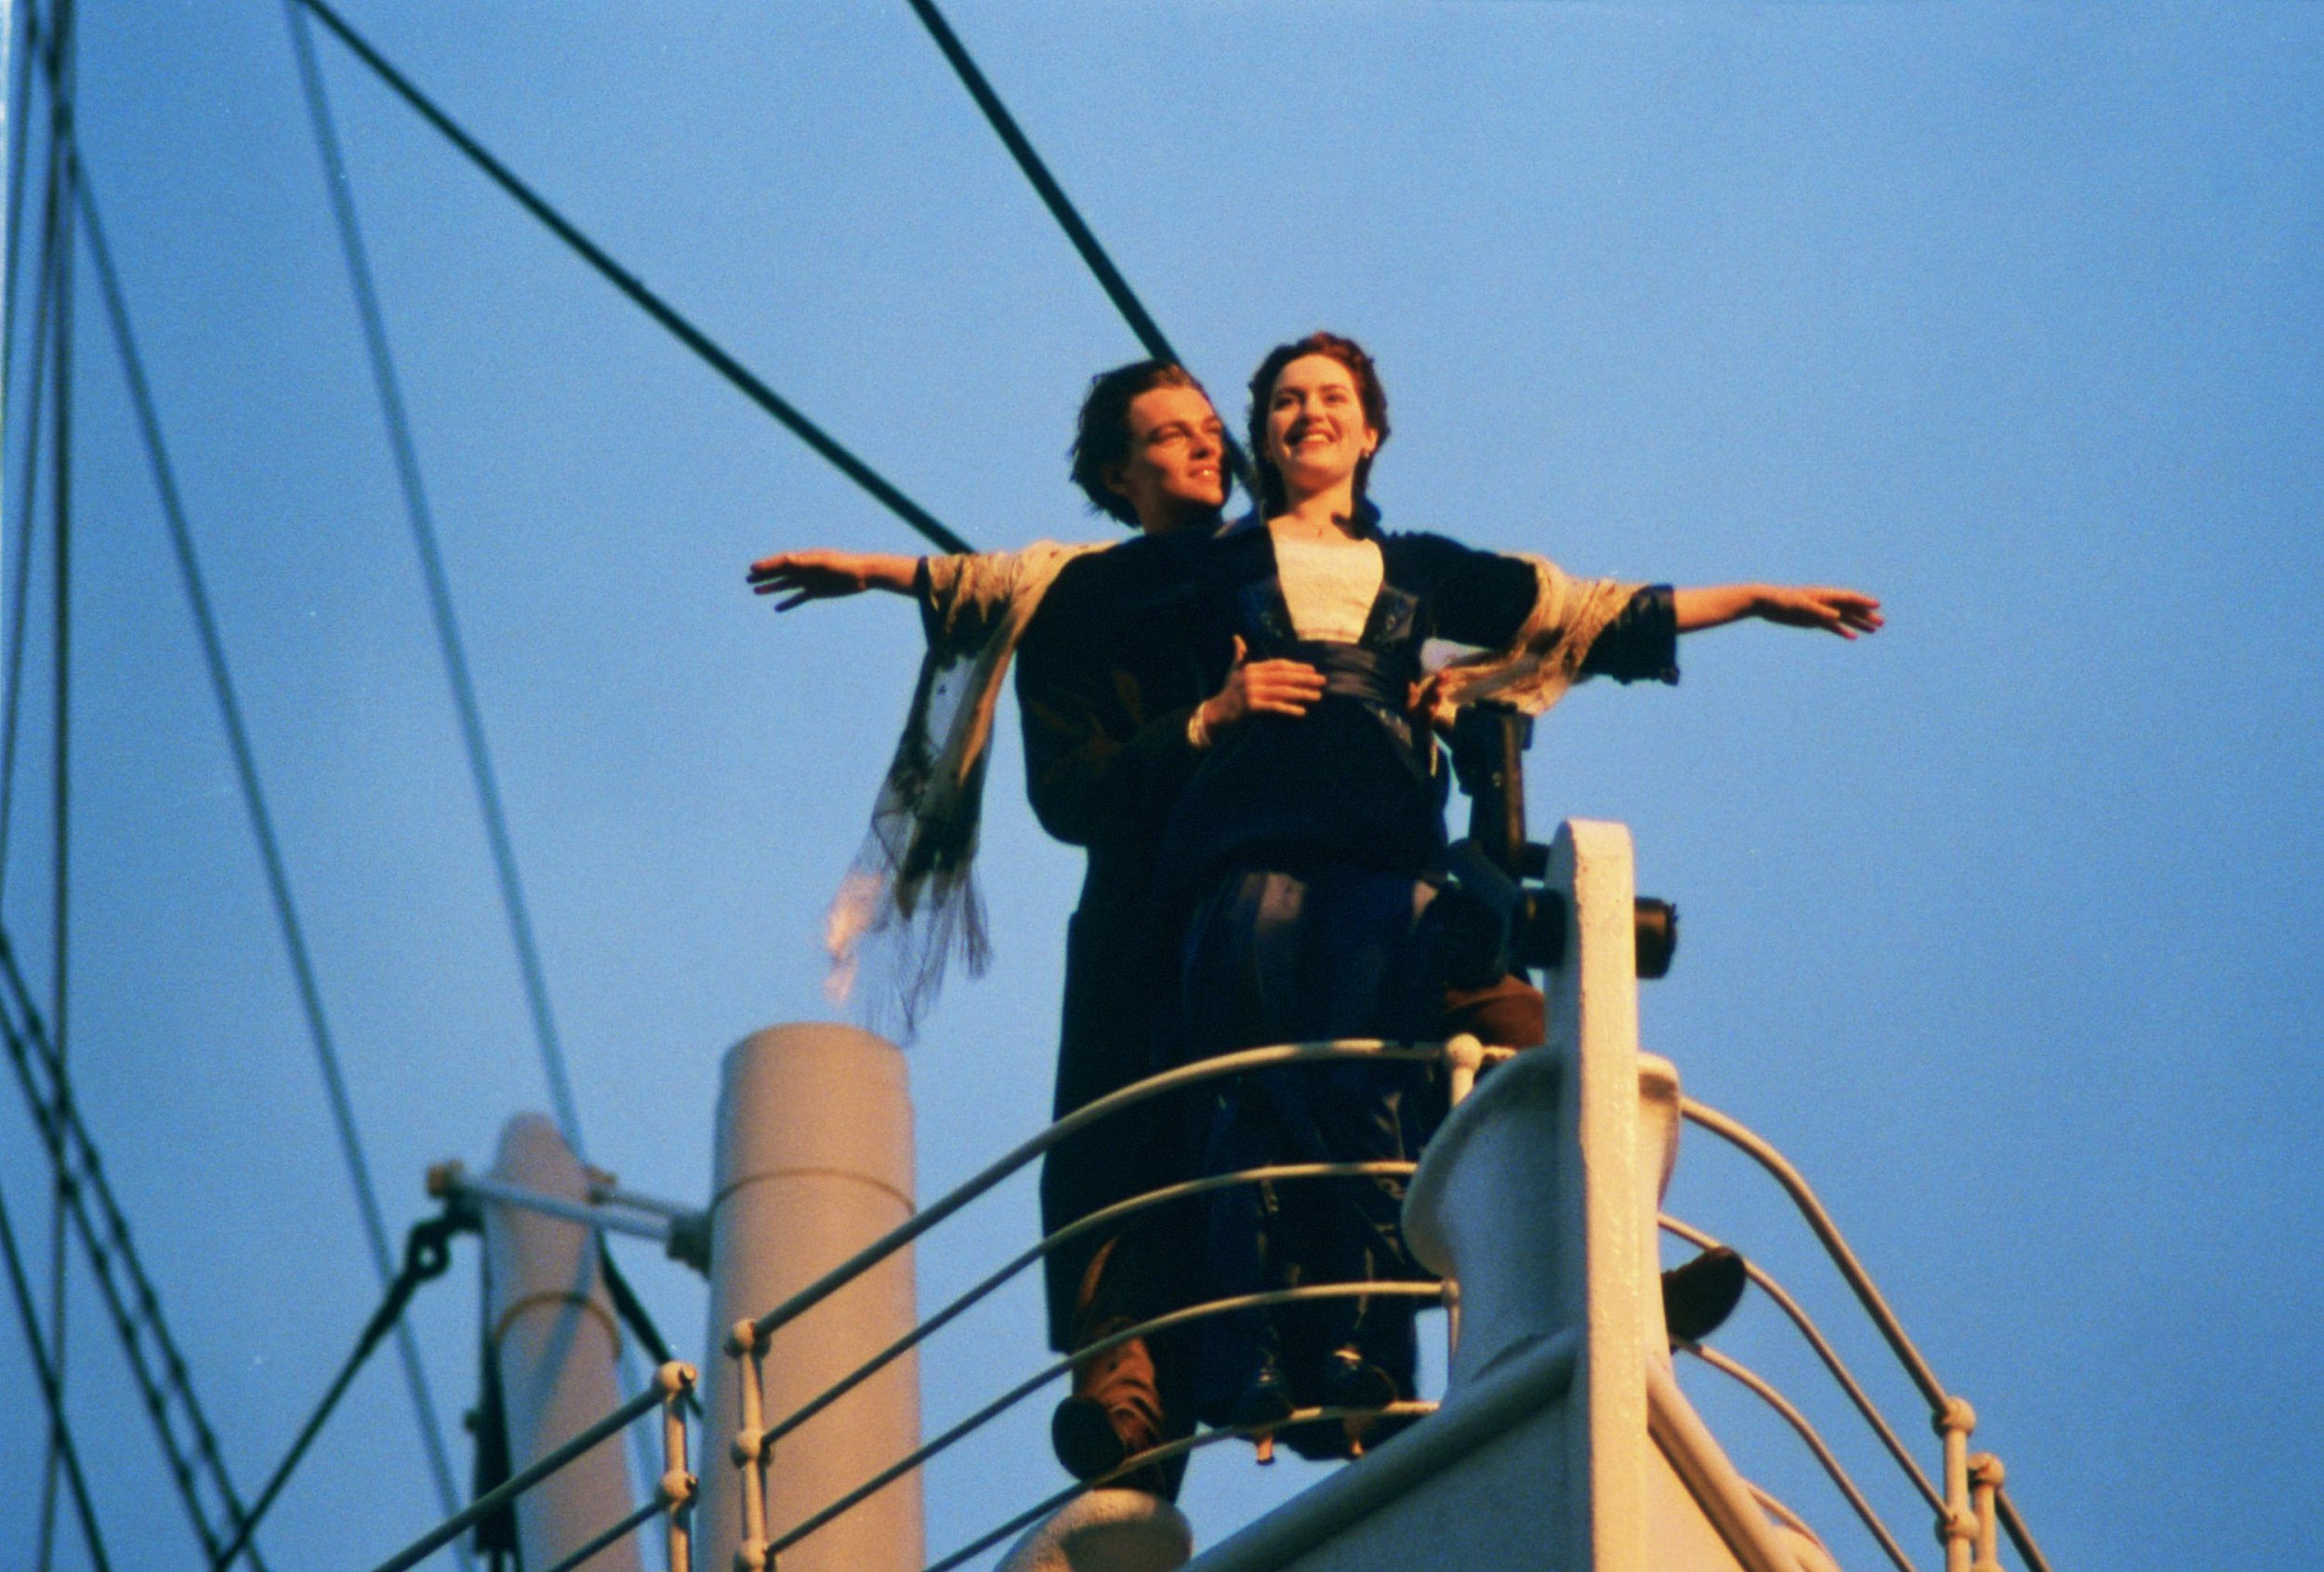 James Corden and Celine Dion hilariously recreate iconic Titanic scene and we're all flying, Jack